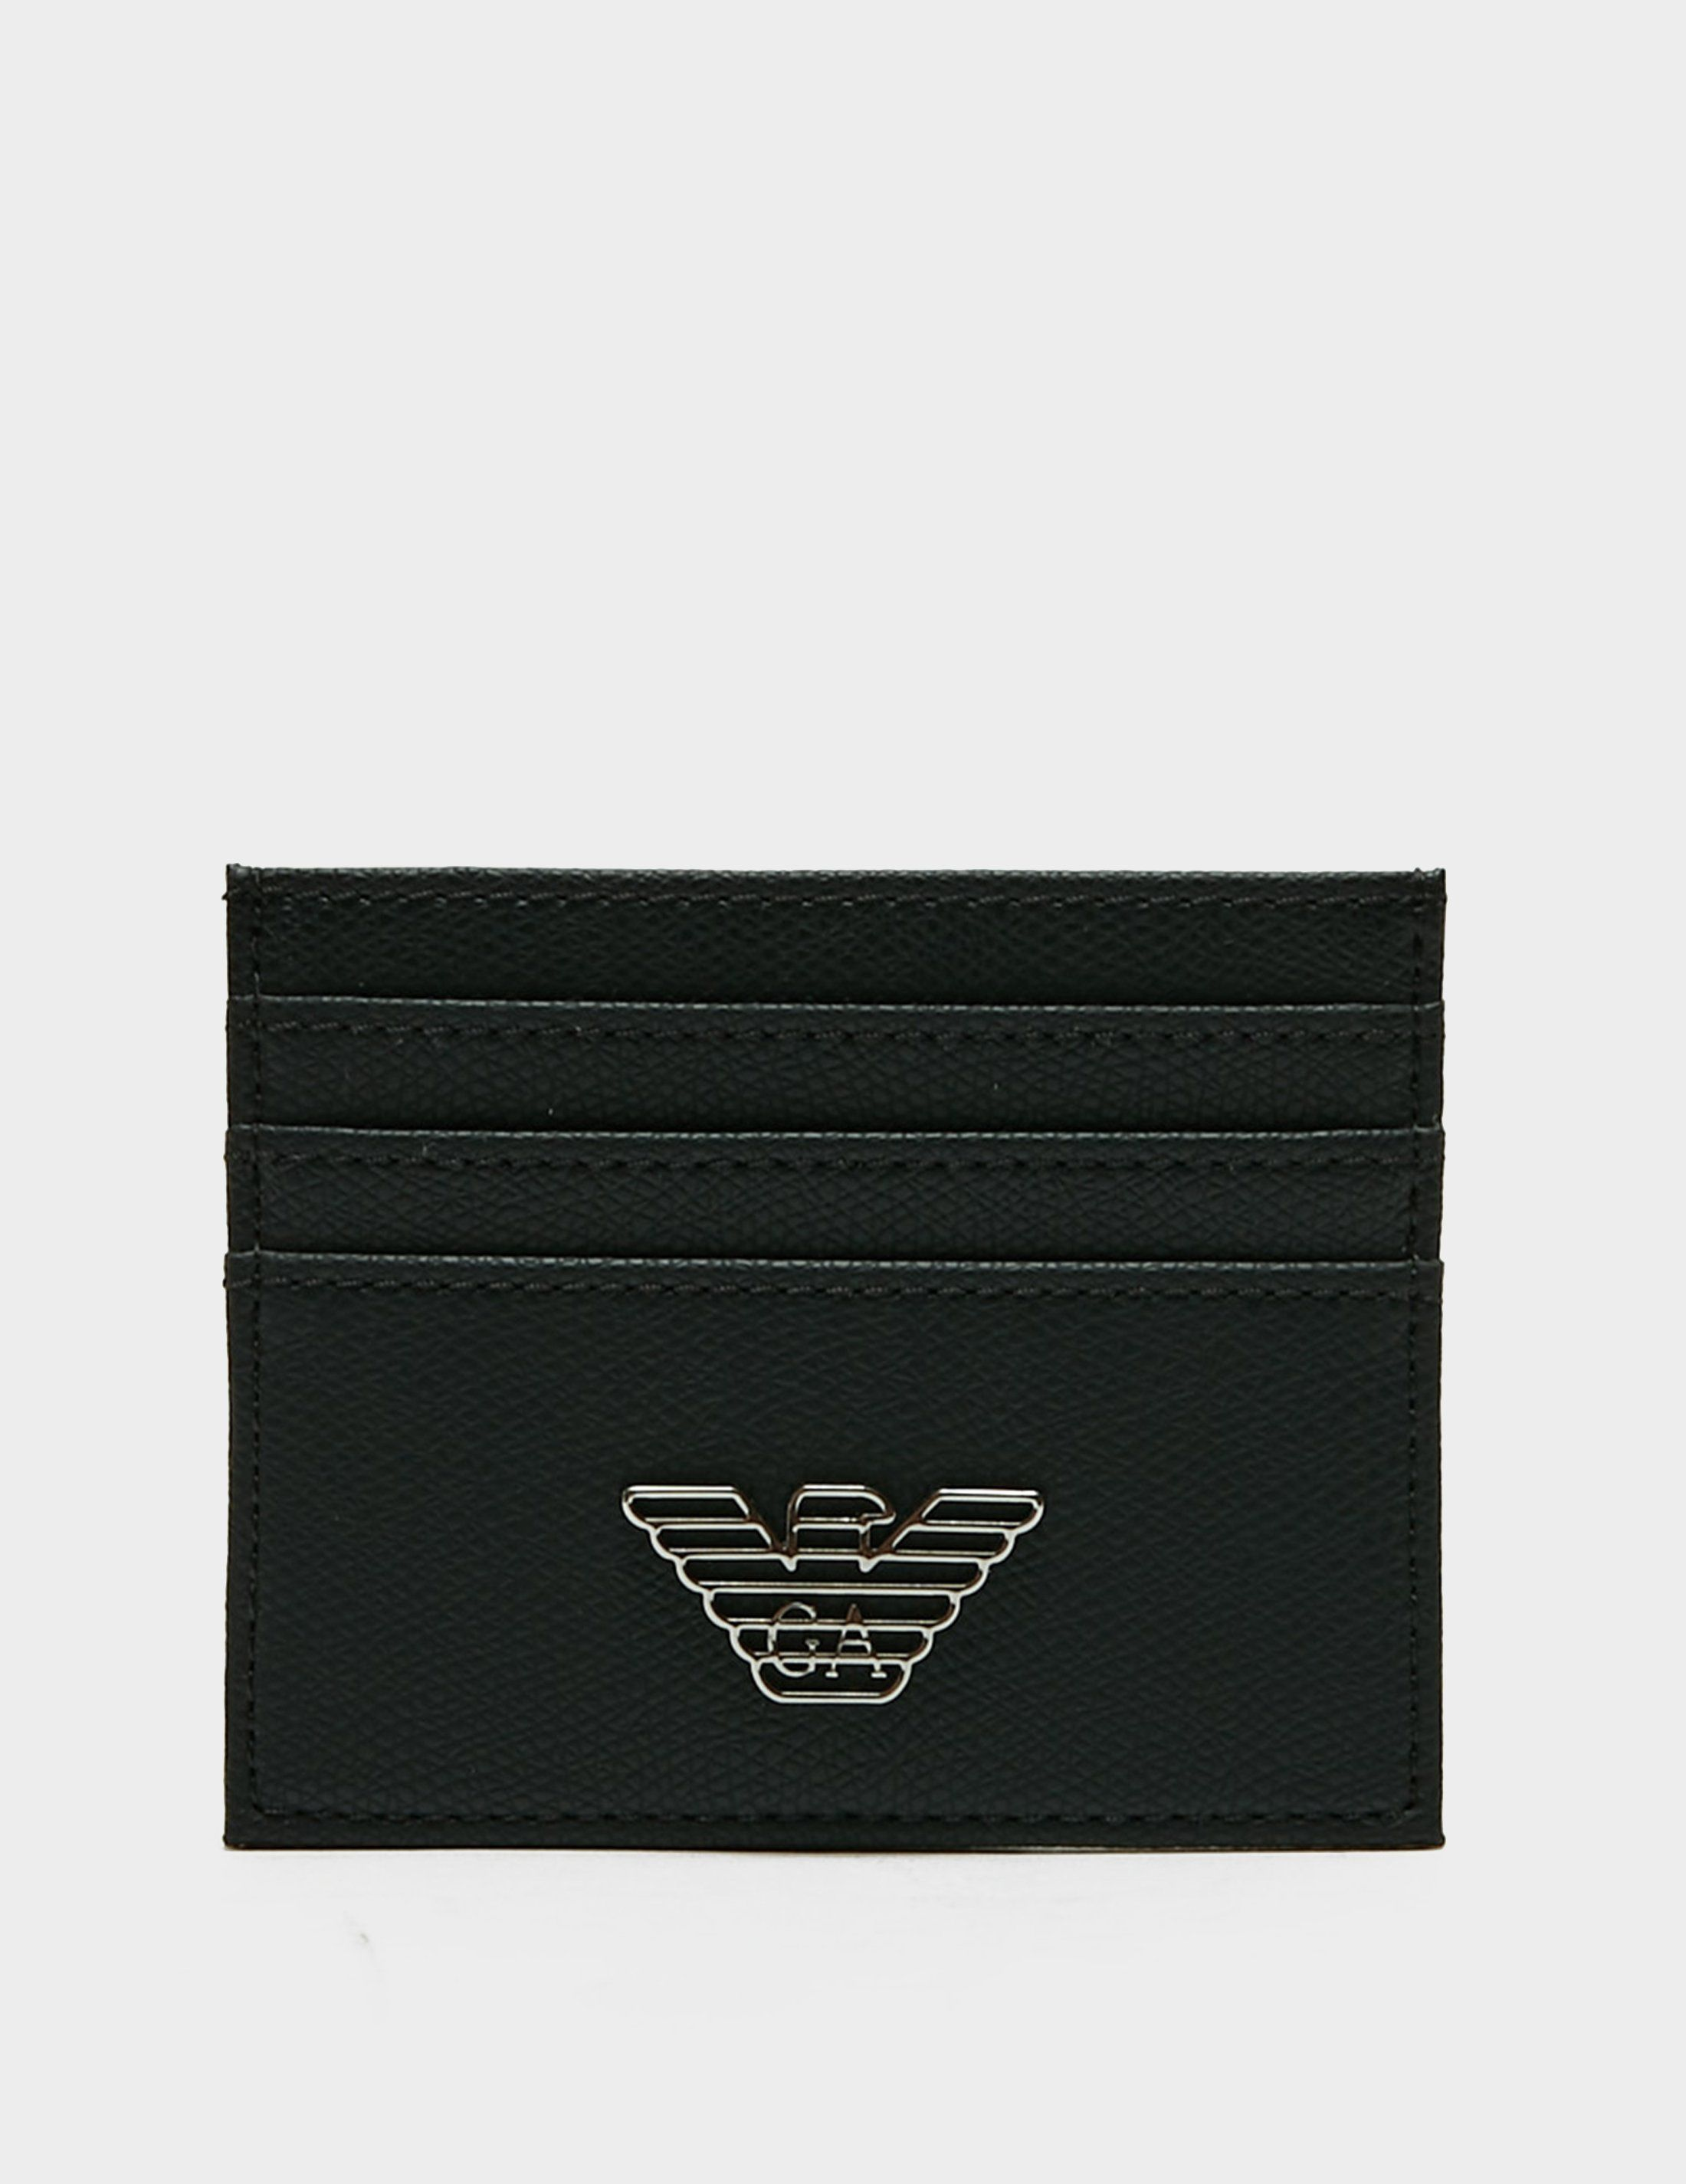 Emporio Armani Metallic Card Holder